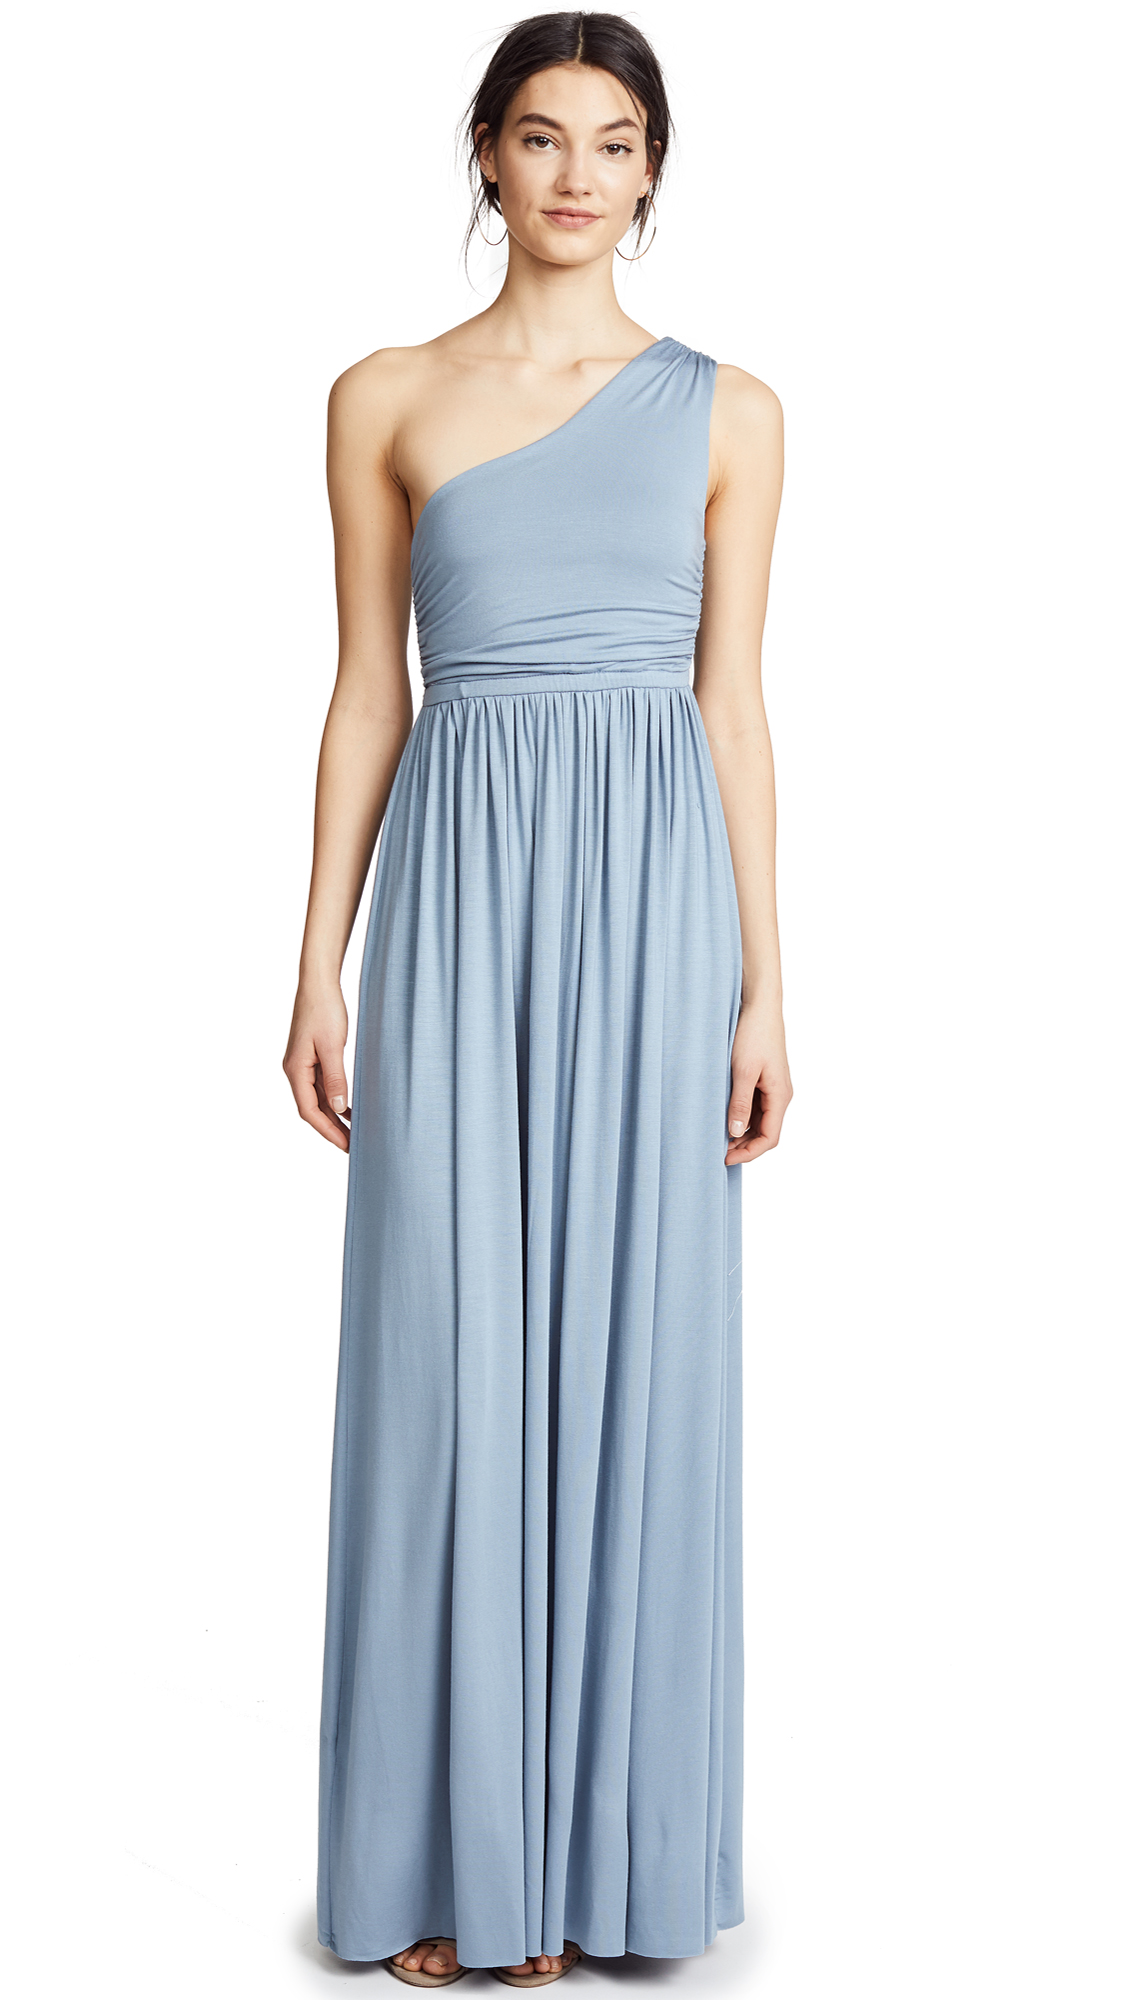 Rachel Pally Kaitlynn Dress In Bay